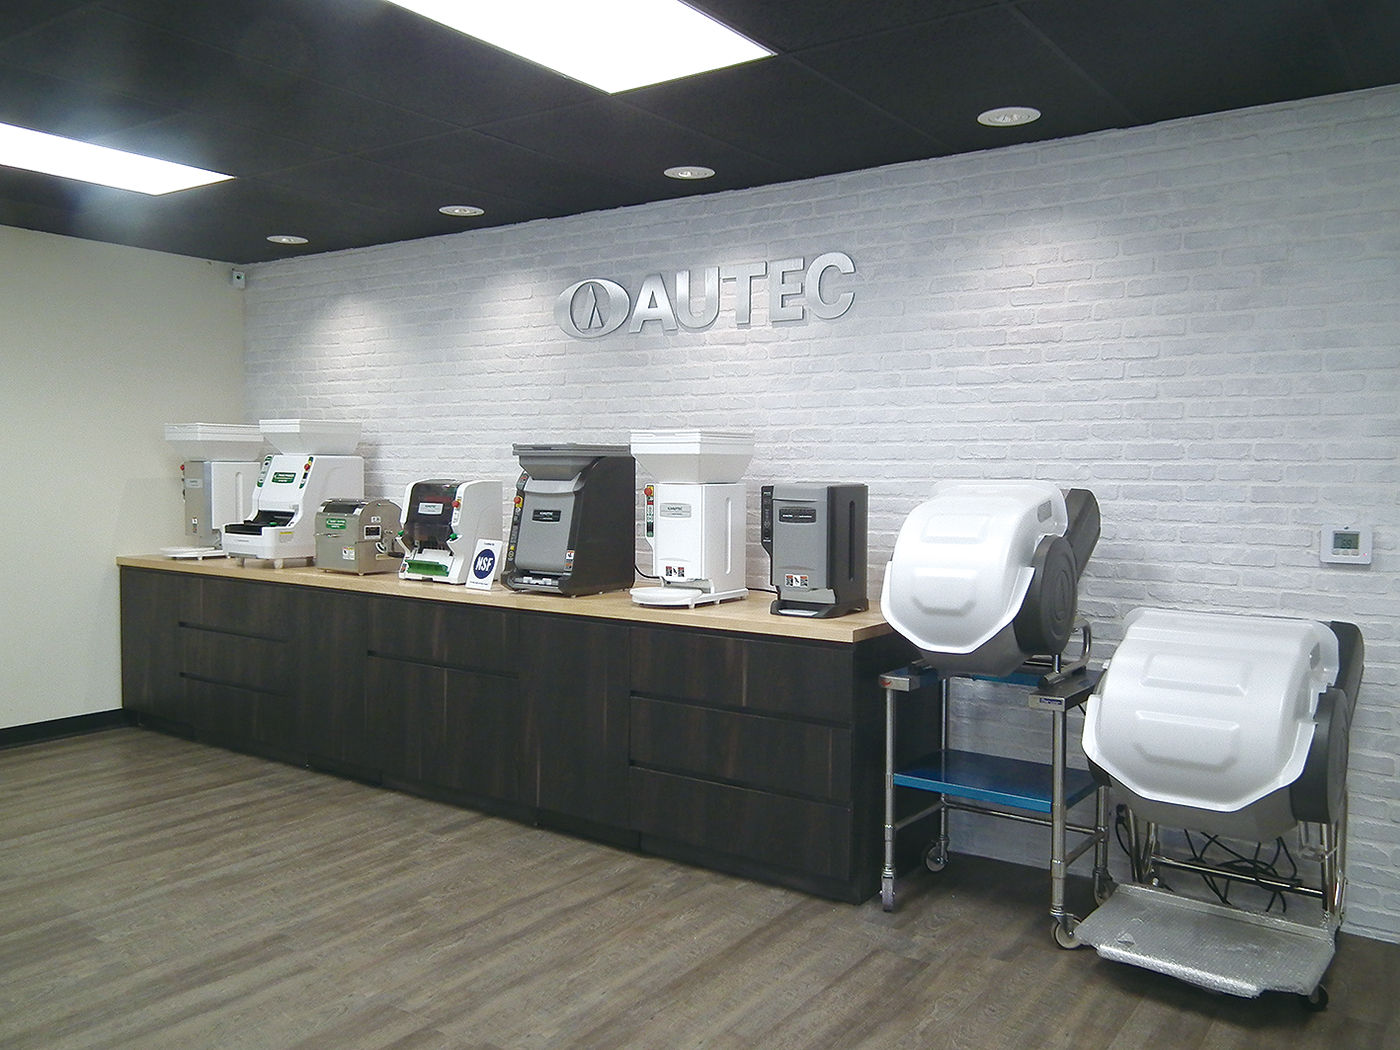 AUTEC Sushi Robot for restaurants, catering, hospitality and college dining